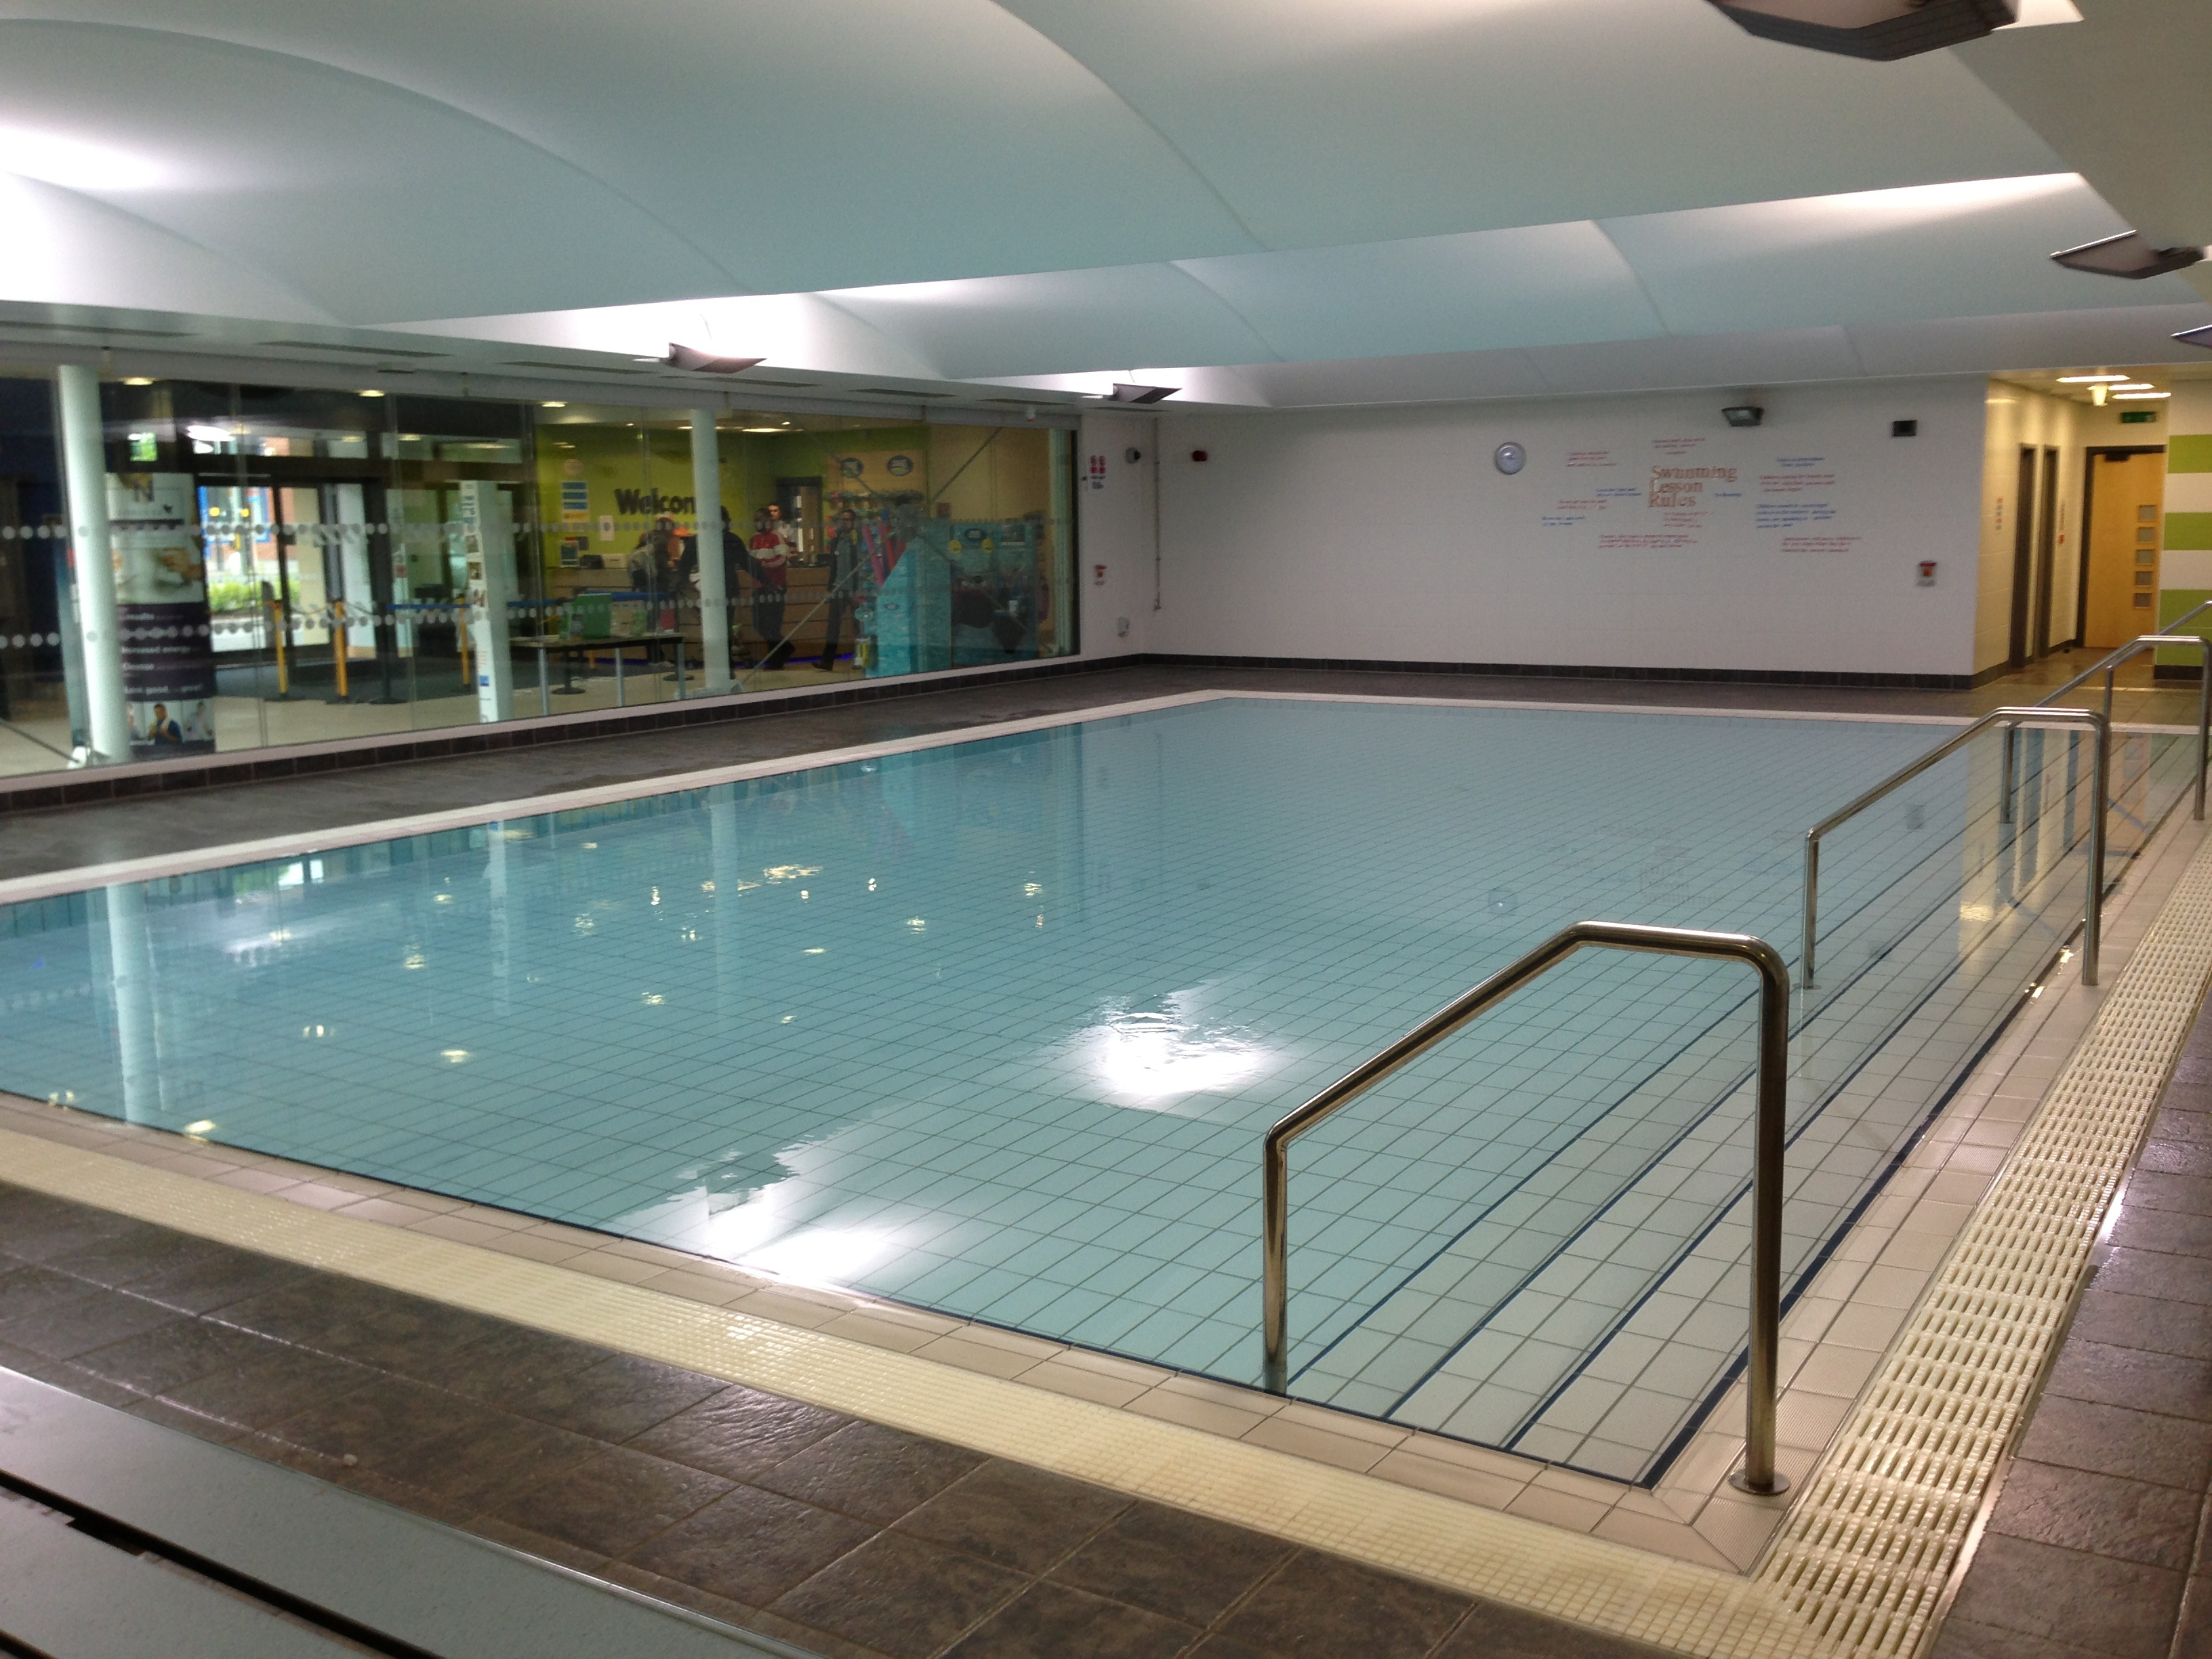 Harborne pool and fitness centre birmingham - Hotels with swimming pools in birmingham ...